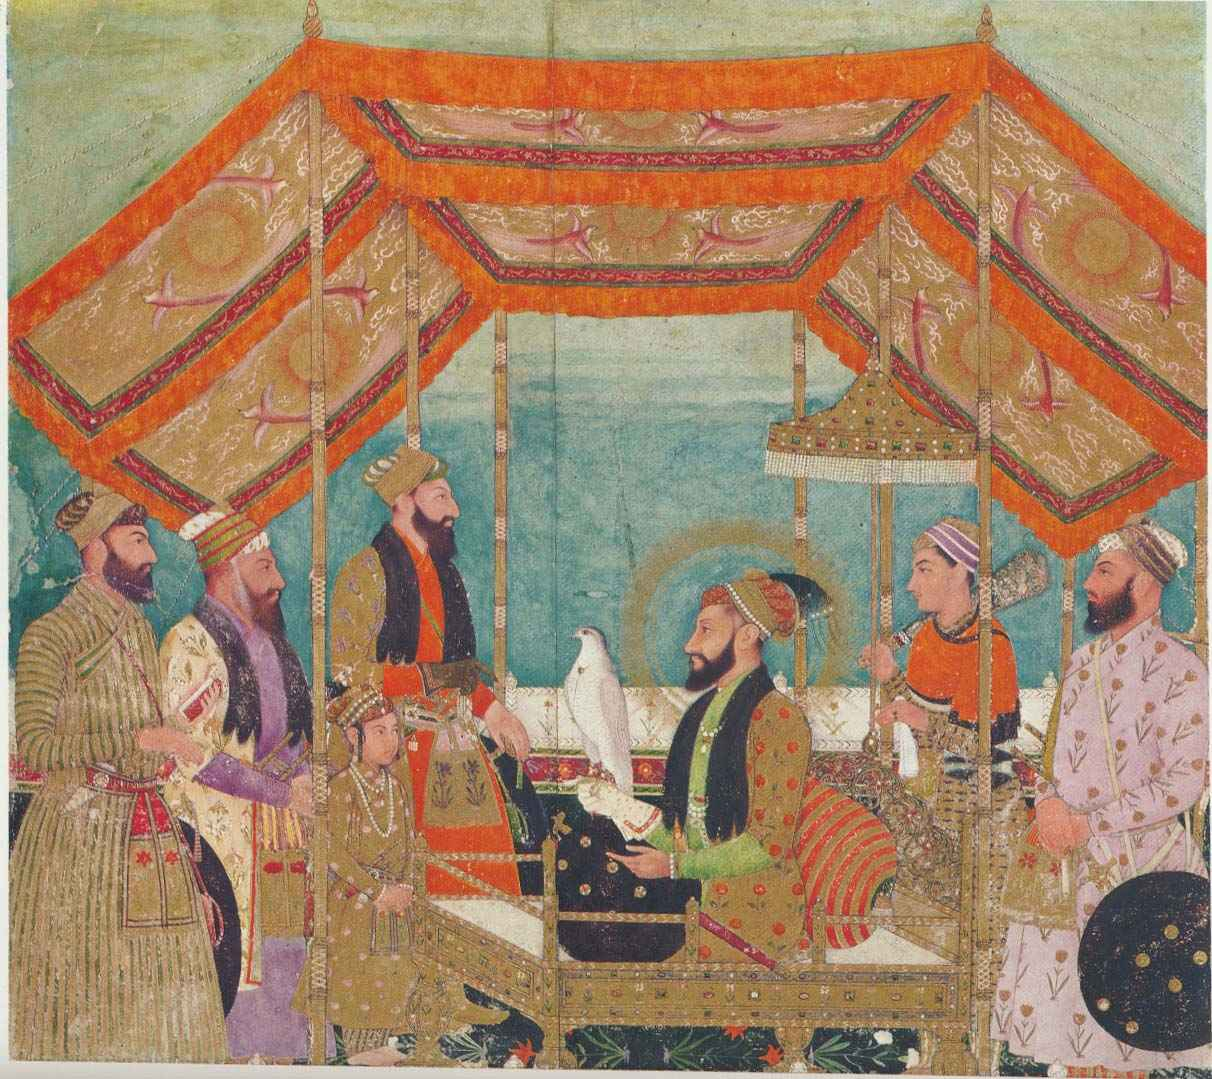 Chronicling the Lives of Two Noblemen-Poets in the Mughal Court